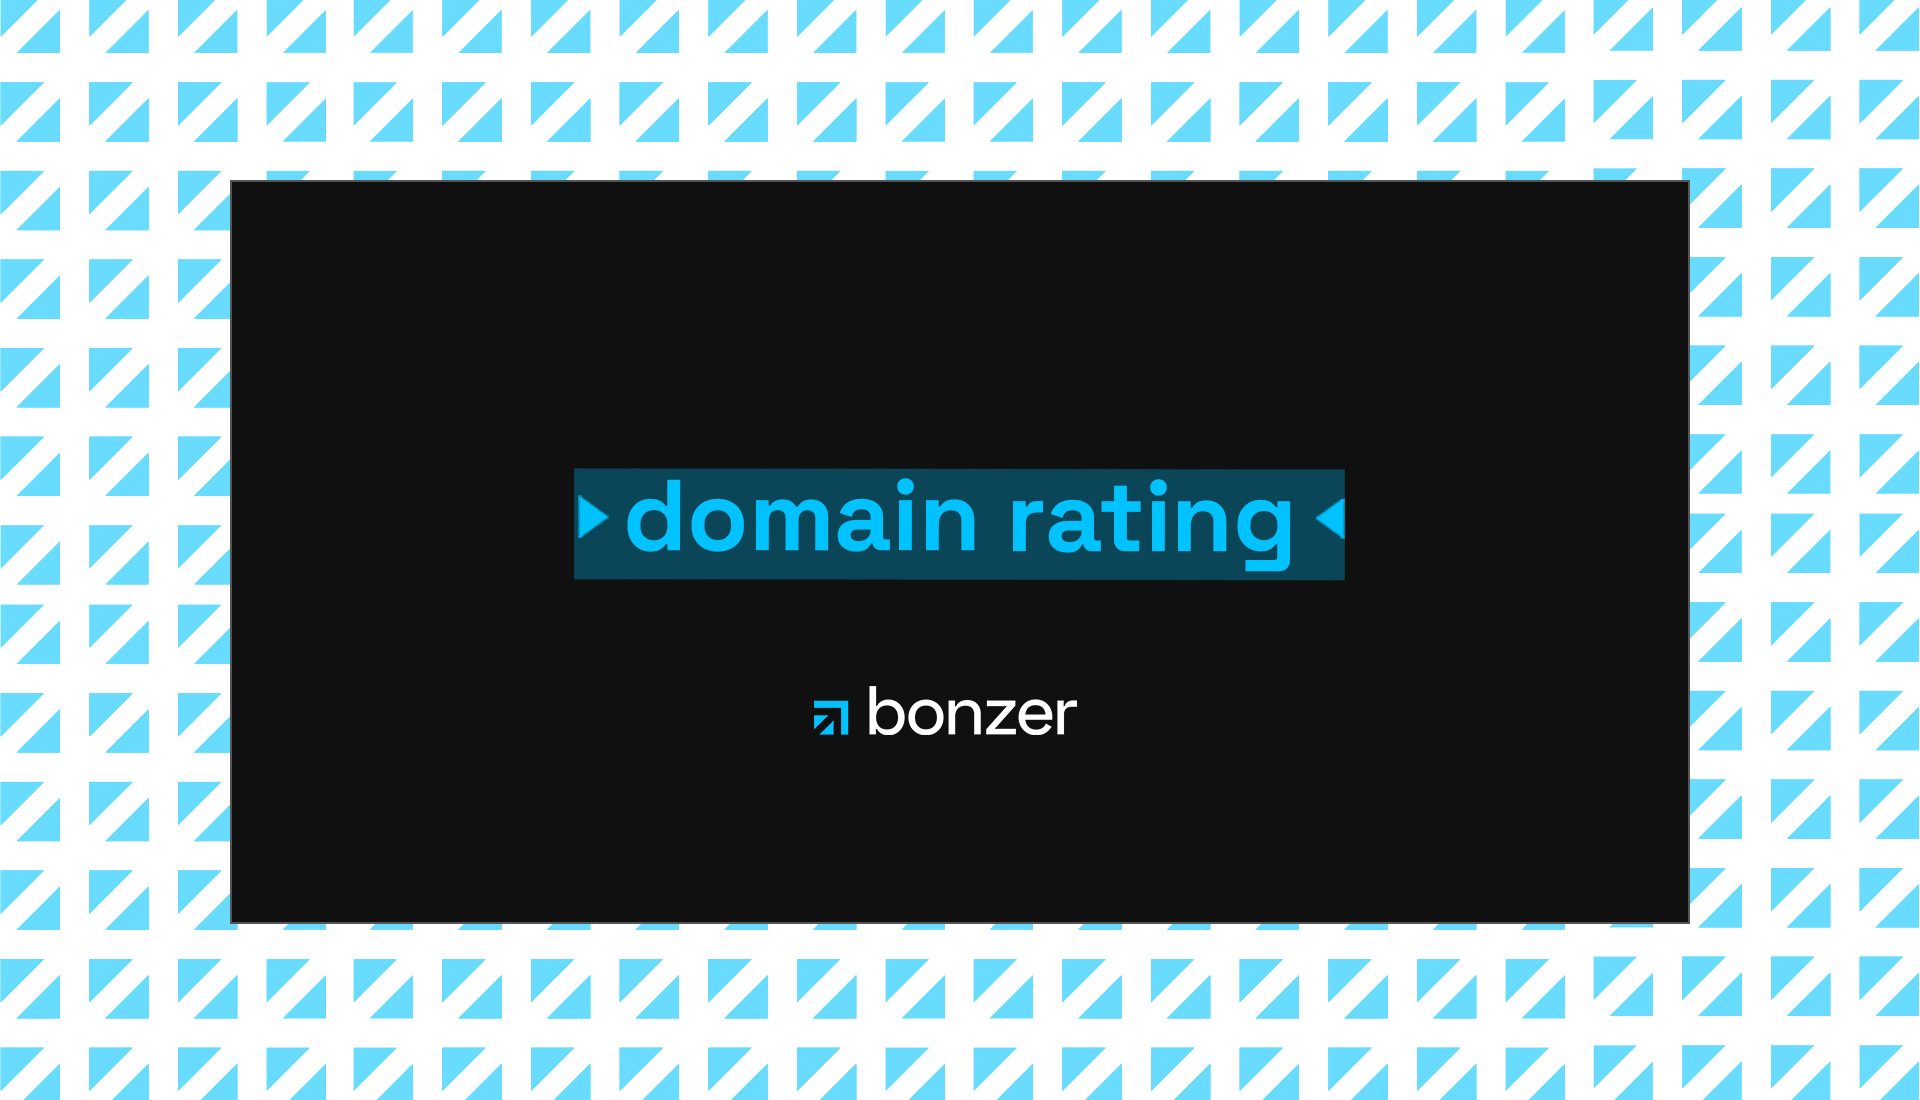 3 linkbuilding råd der styrker din domæne autoritet (domain rating)